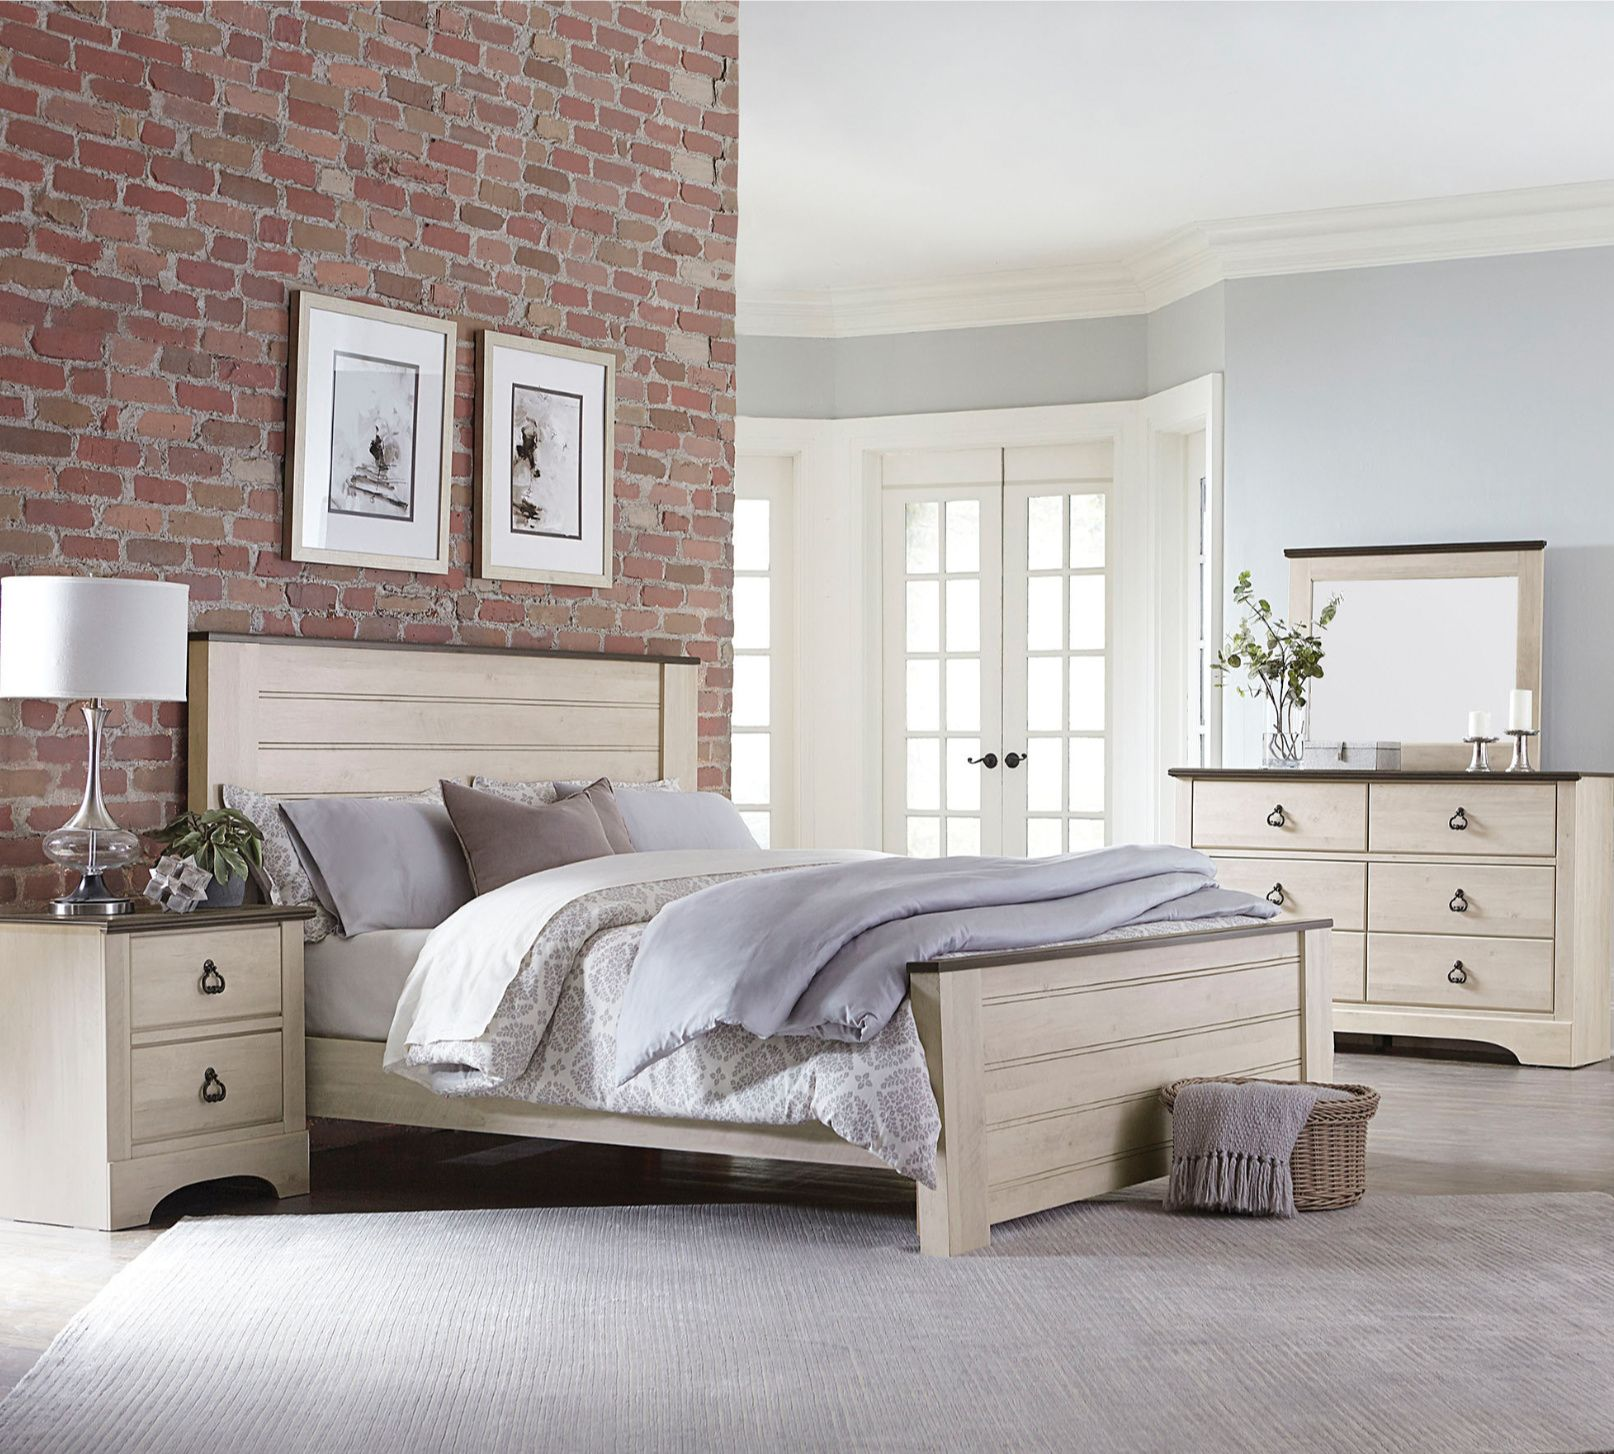 Farmhouse Style for the Bedroom  Bedroom set, Redecorate bedroom